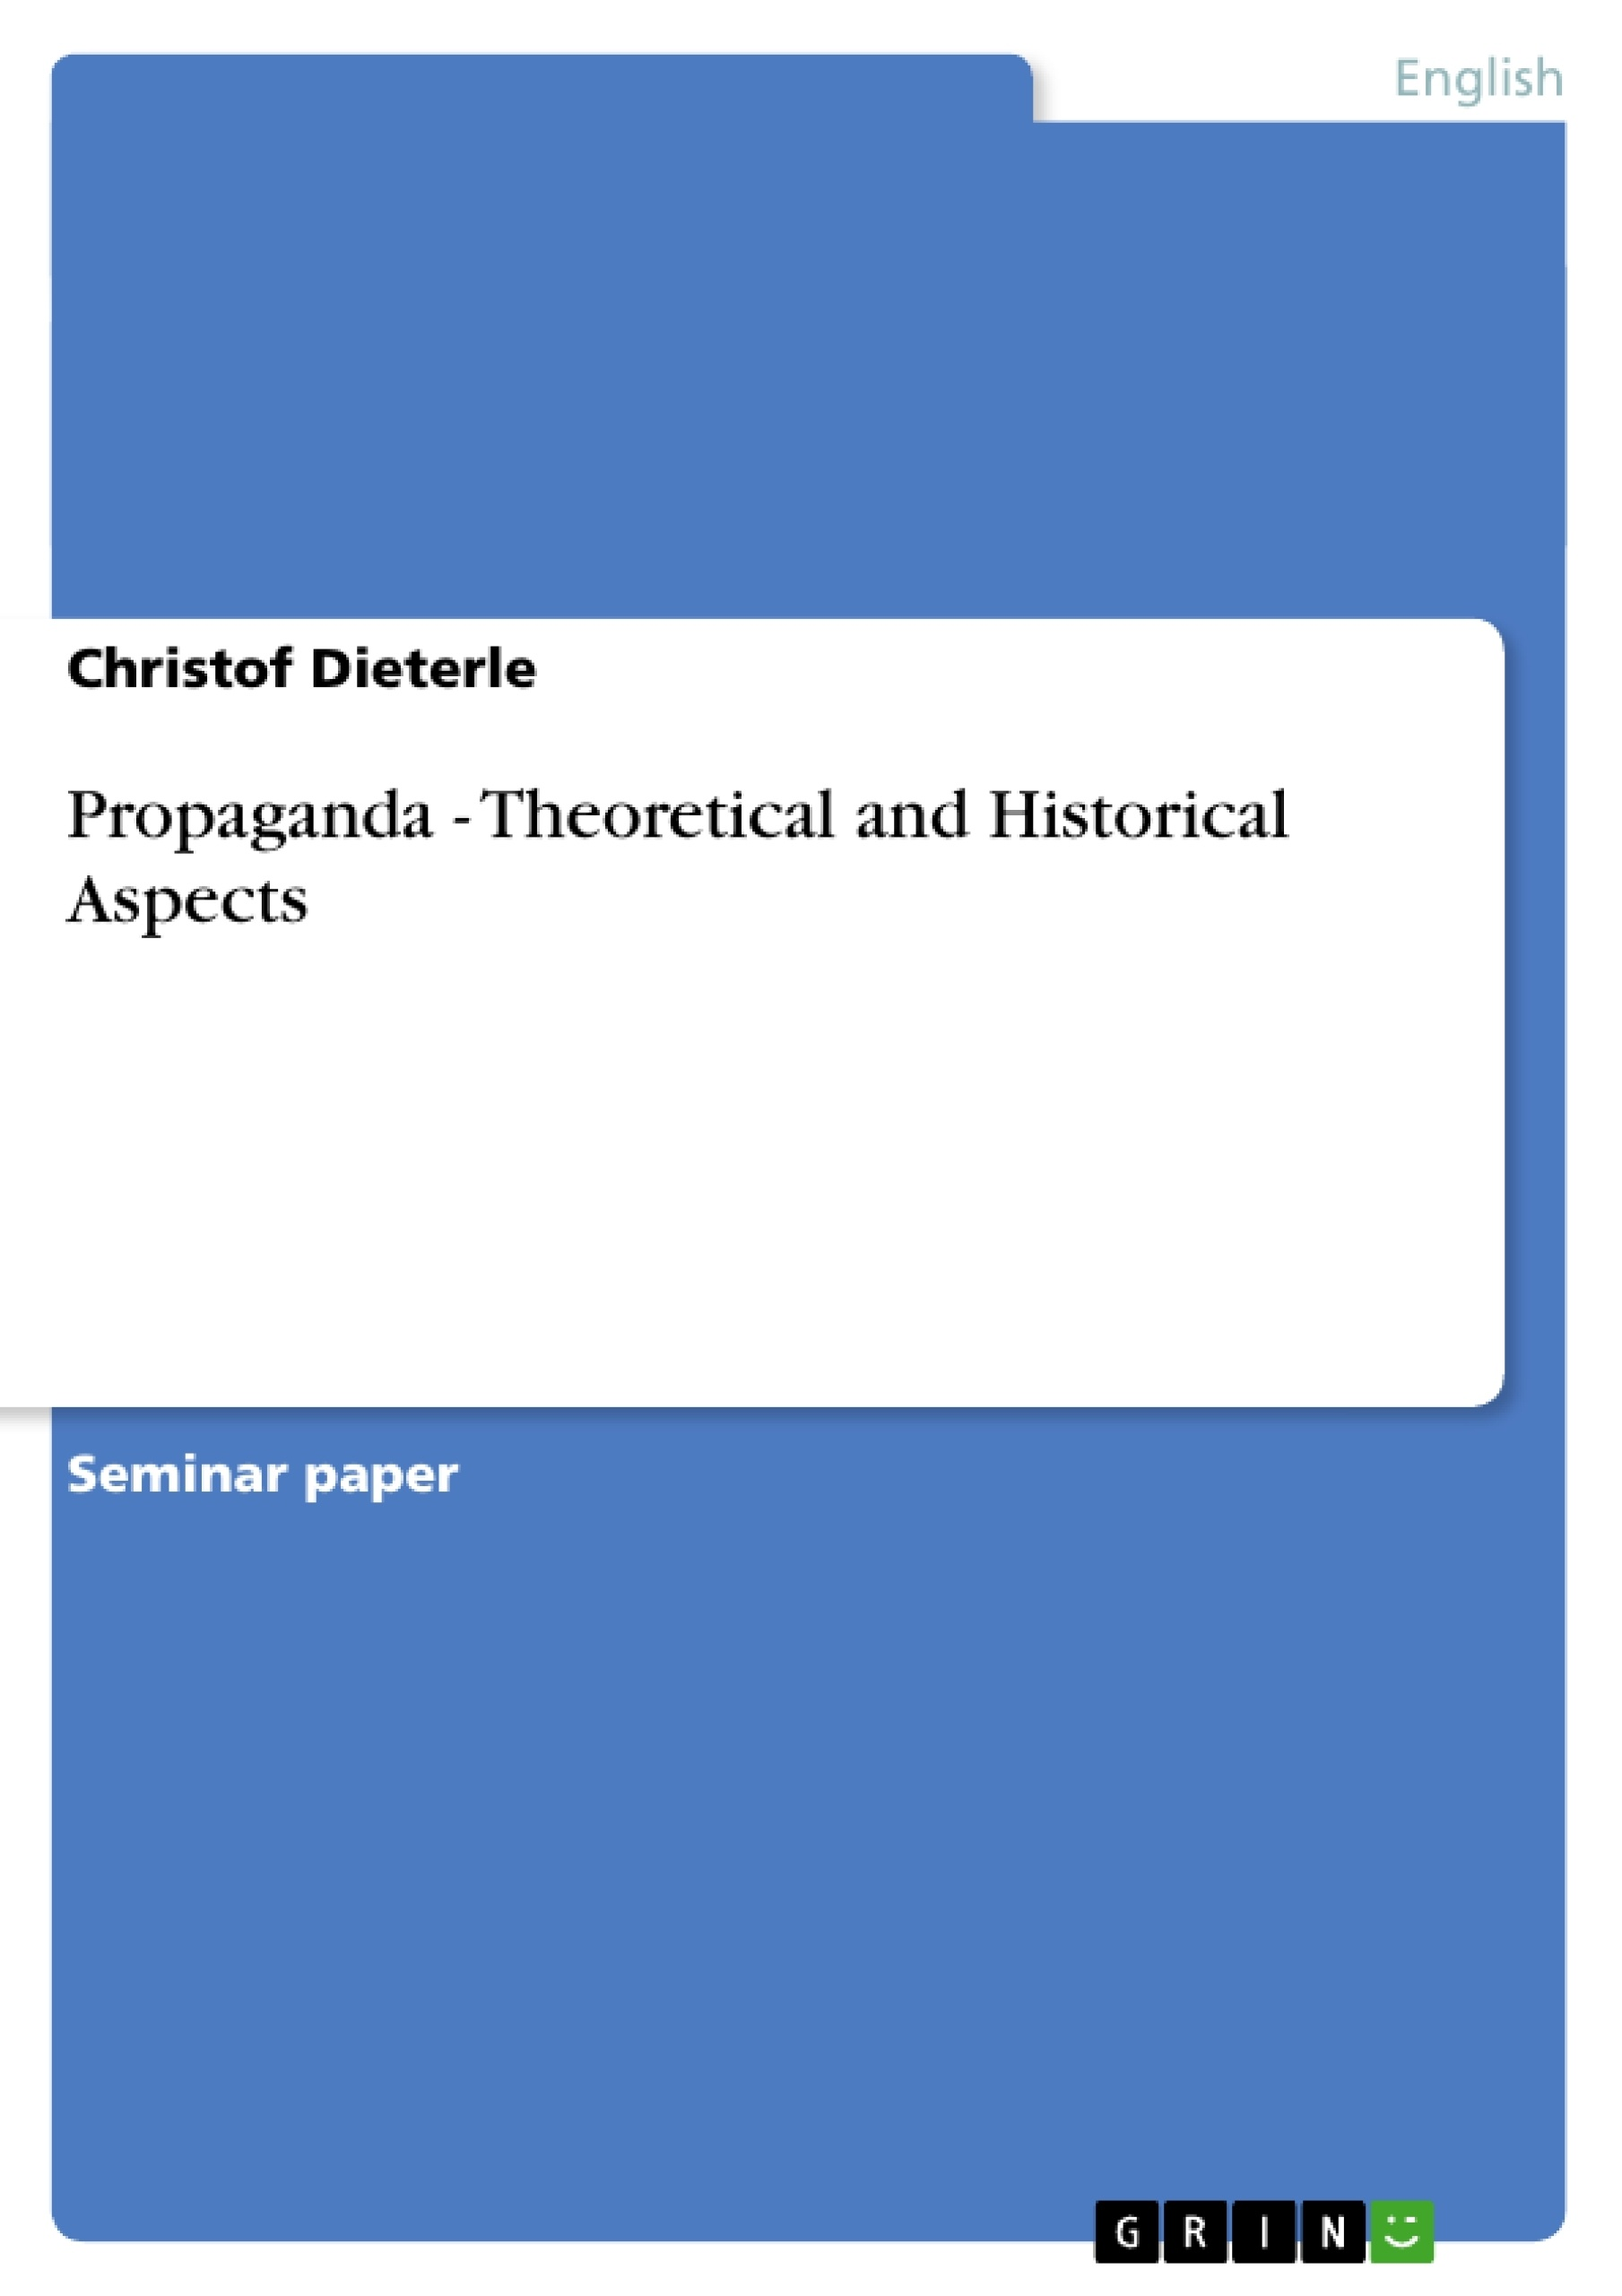 Title: Propaganda - Theoretical and Historical Aspects